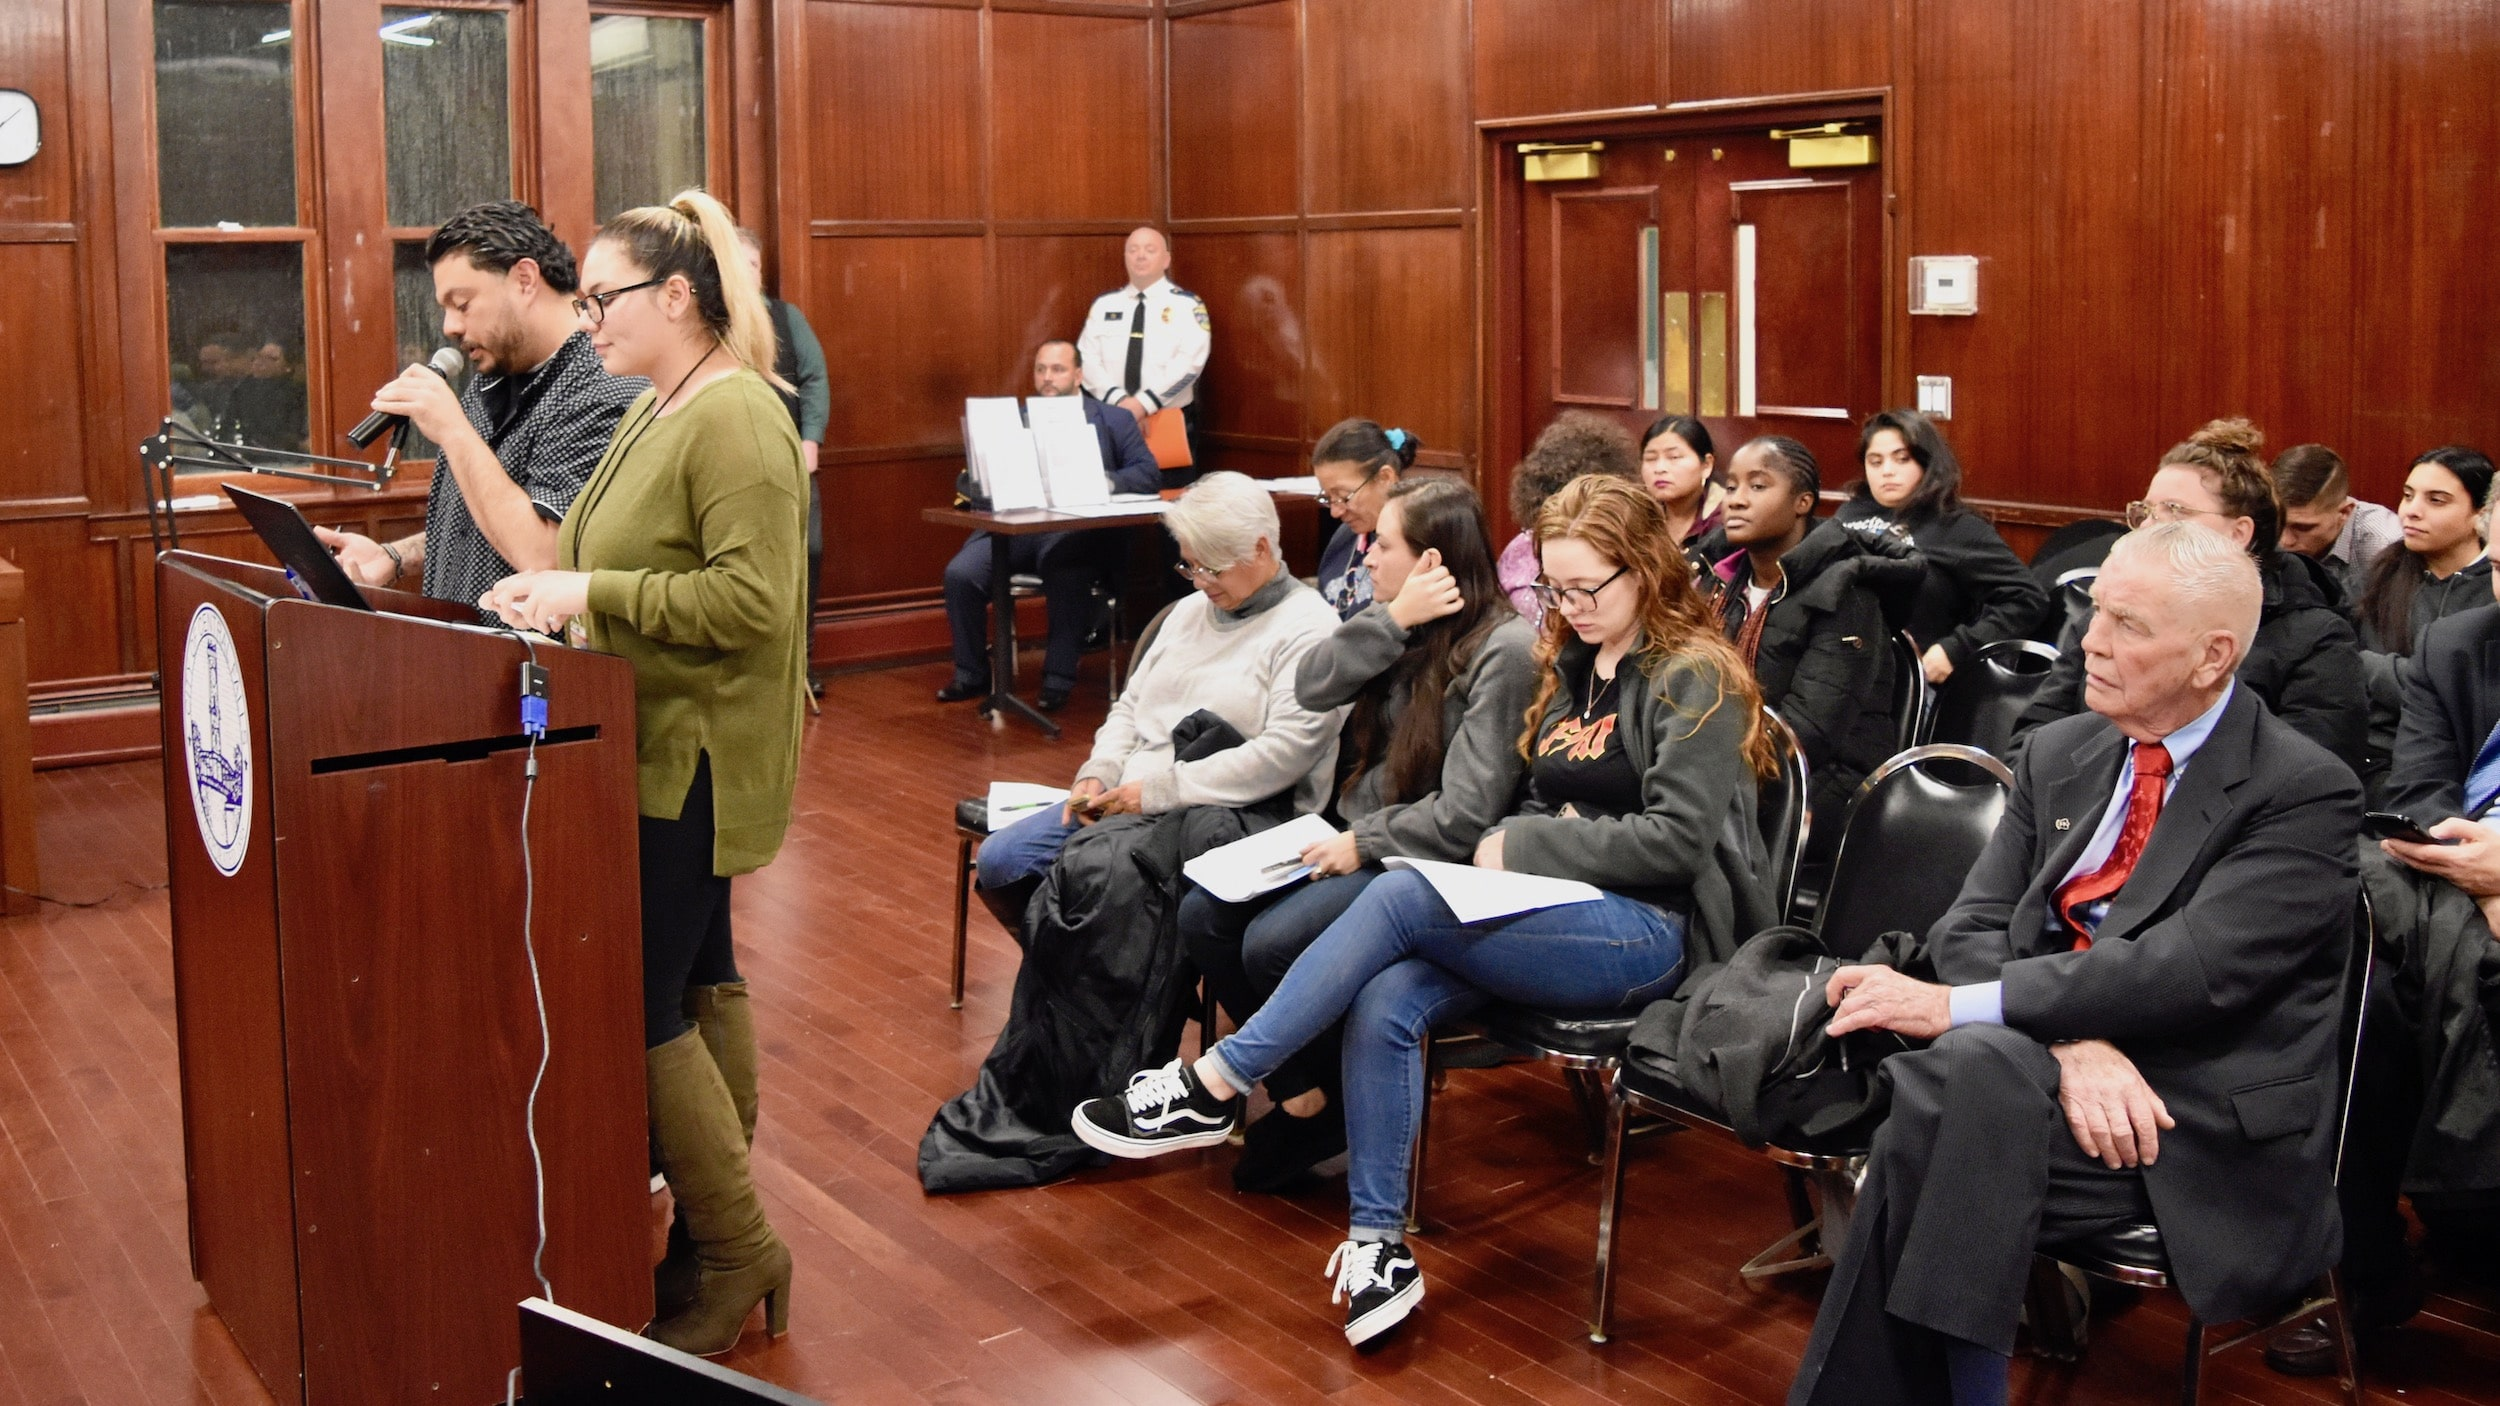 Photo for Community Safety Survey in Central Falls indicates 98.4 percent feel negatively towards the Wyatt